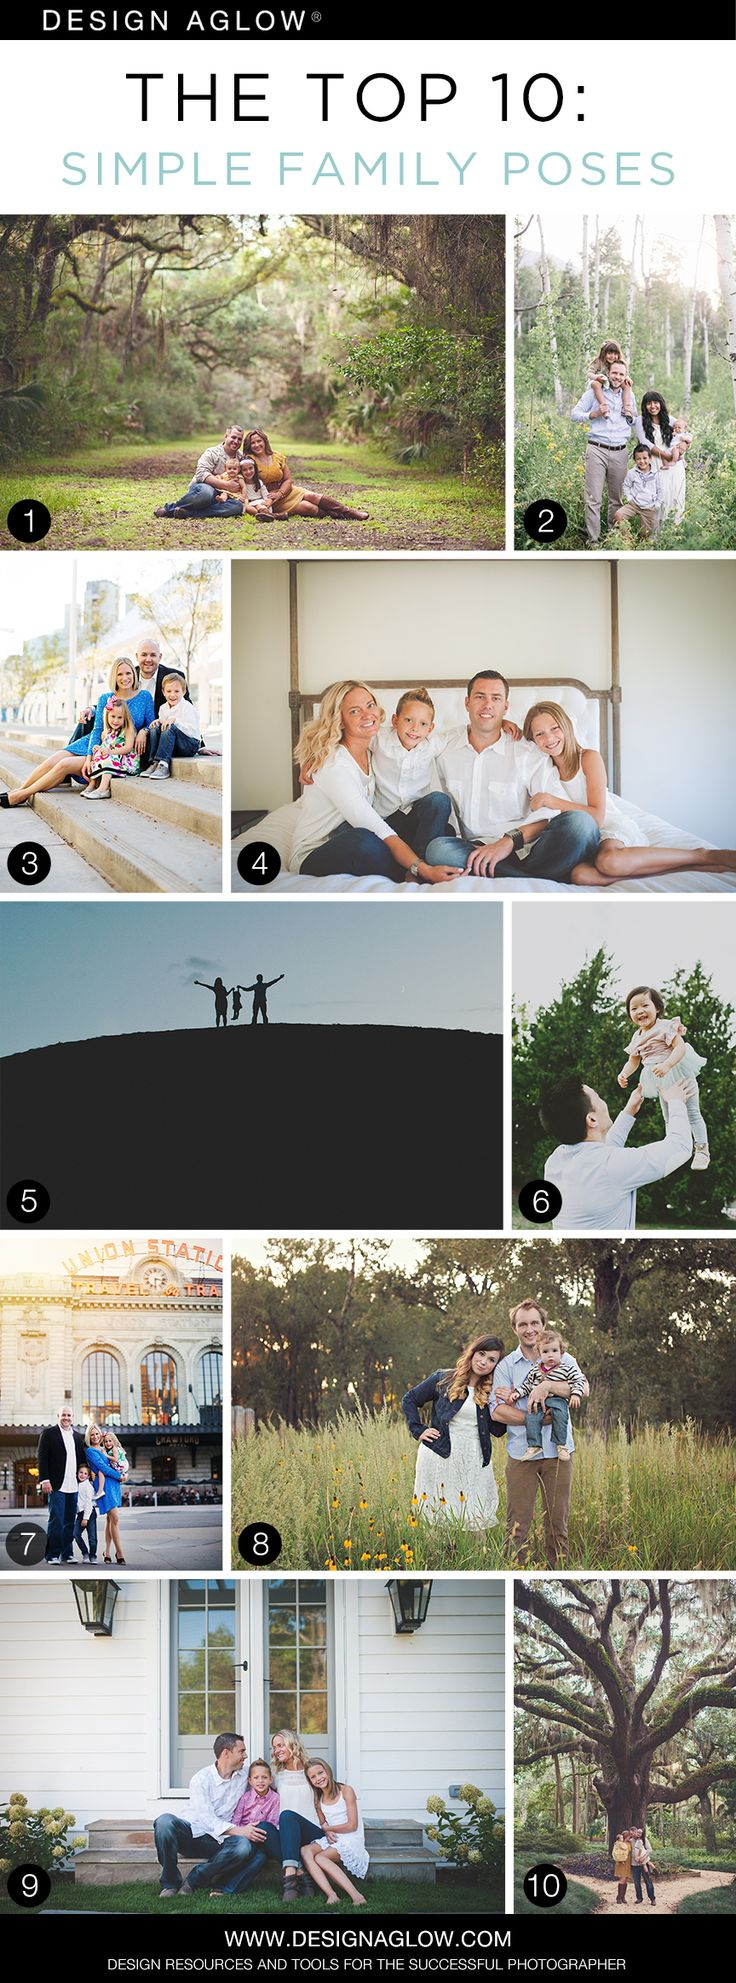 The Top 10: Simple Family Poses